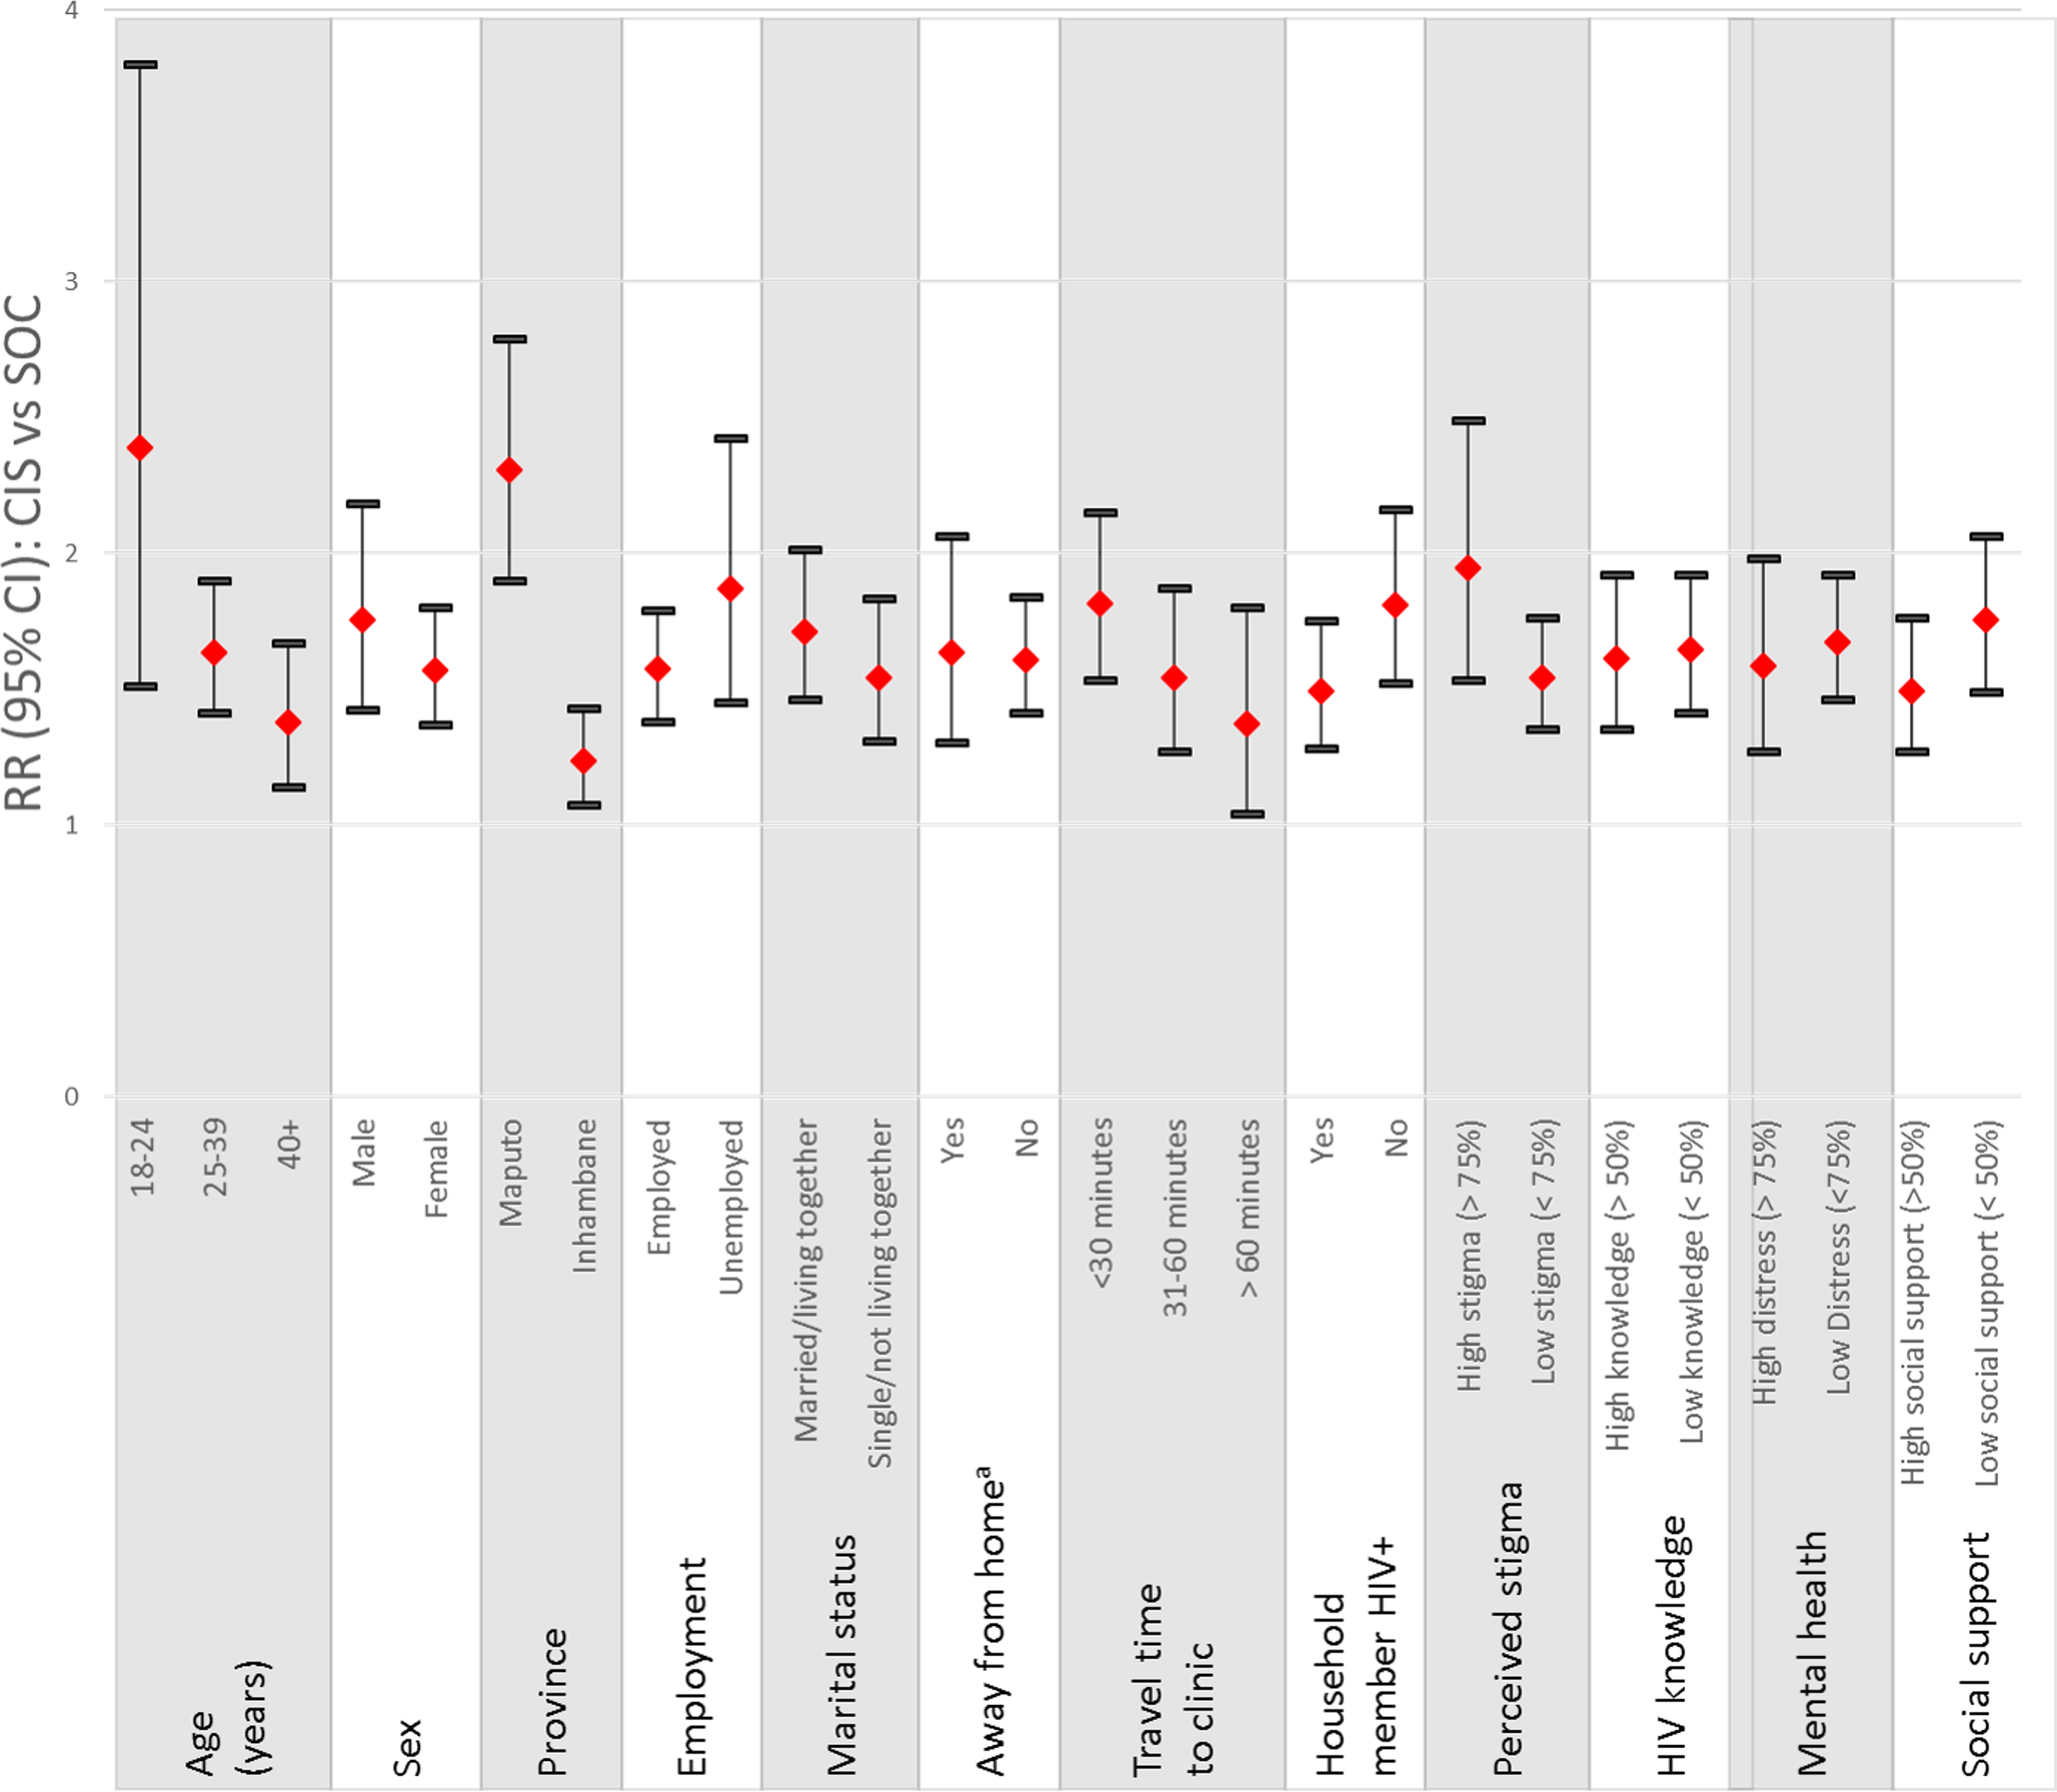 Relative risk of the CIS compared to the SOC on the primary outcome at the diagnosing health facility by patient characteristics.